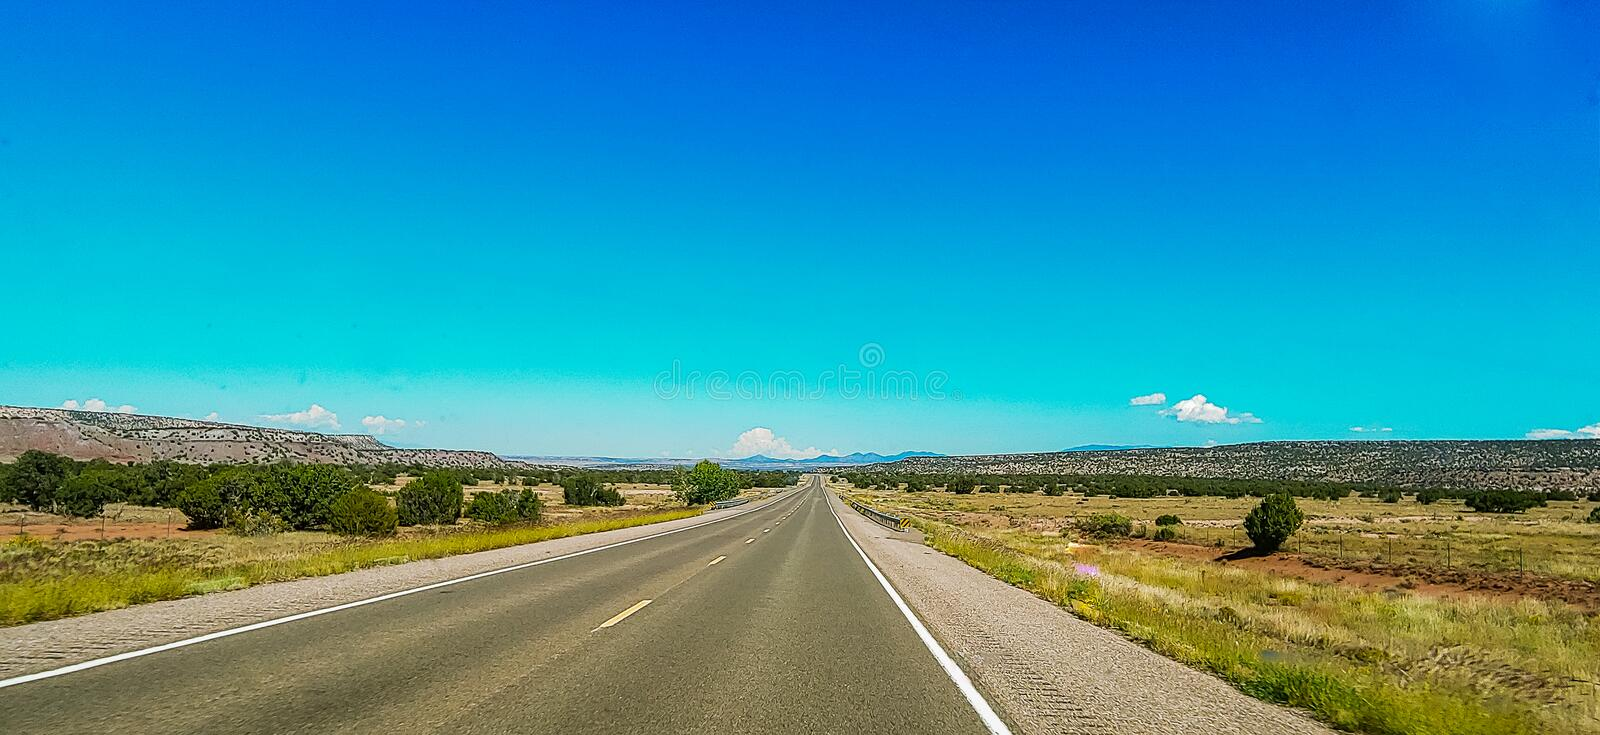 Straight Stretch of Open Desert Road stock photos